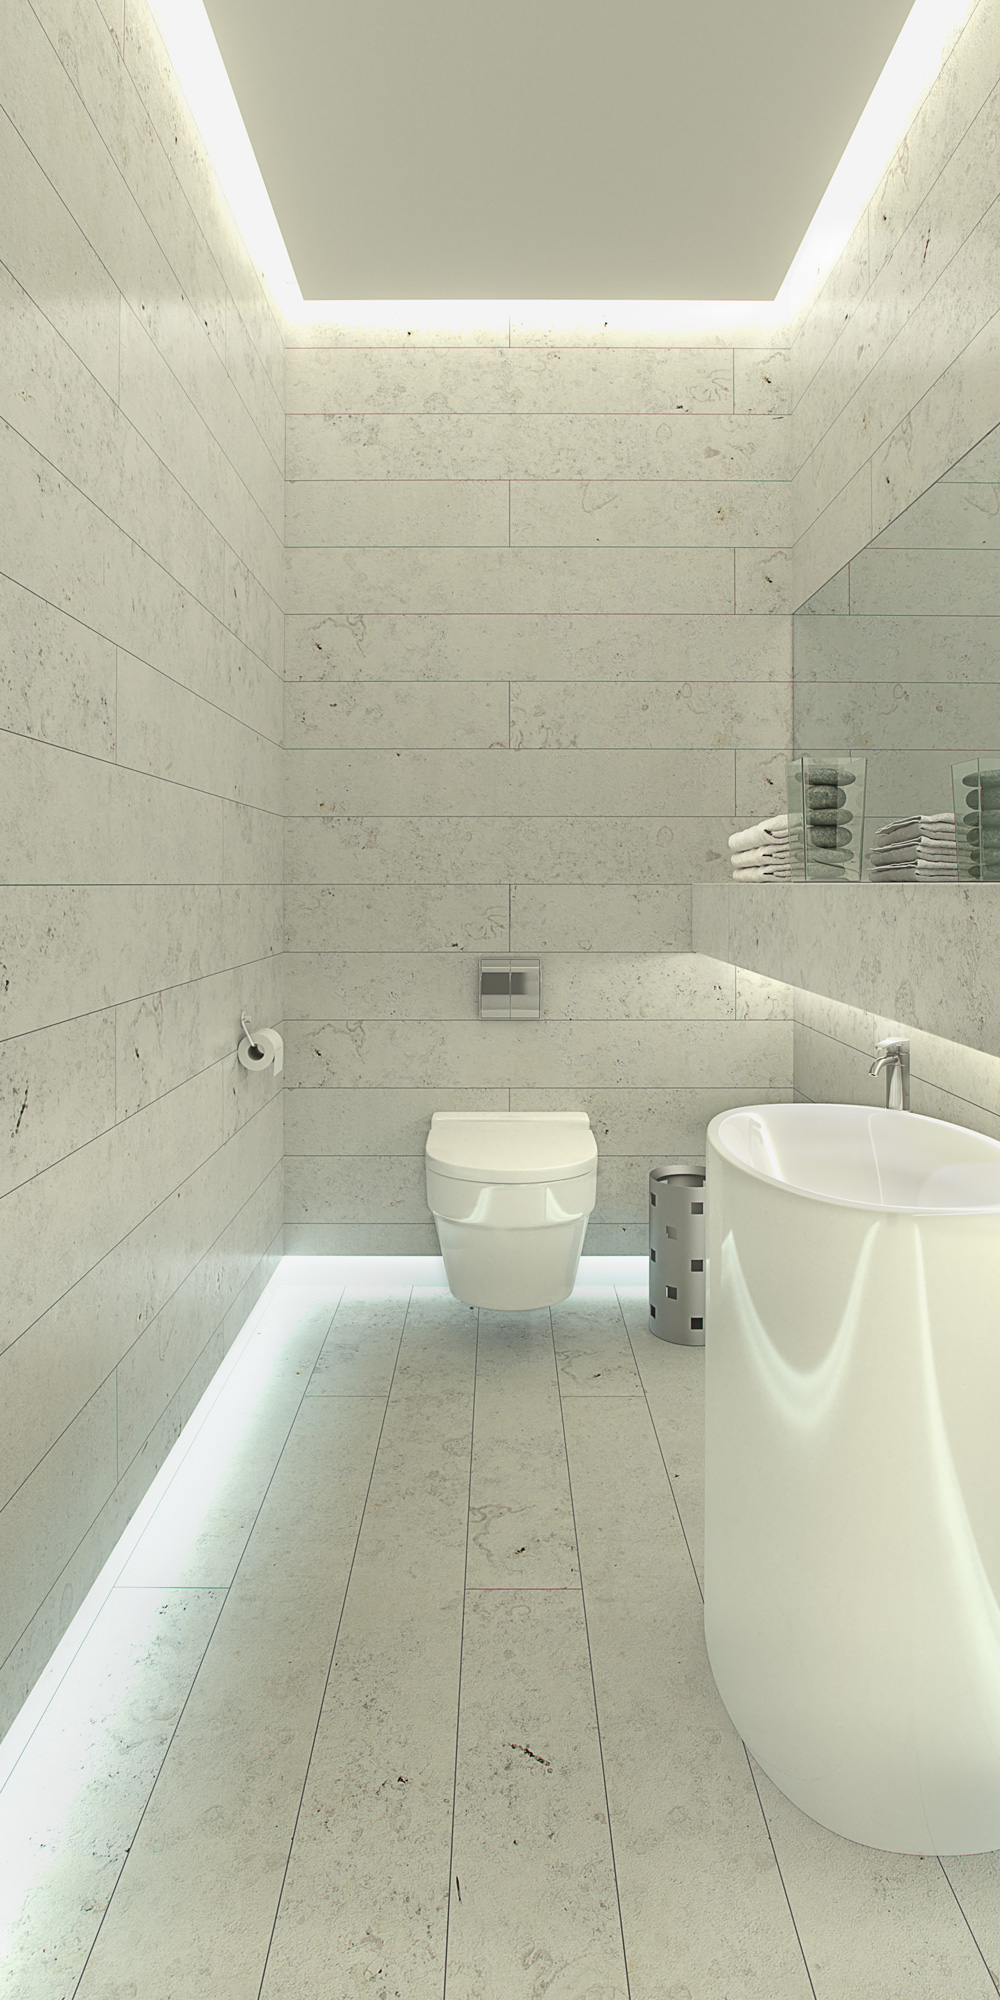 Interior Architectural Visualisation, CGI, Bathroom